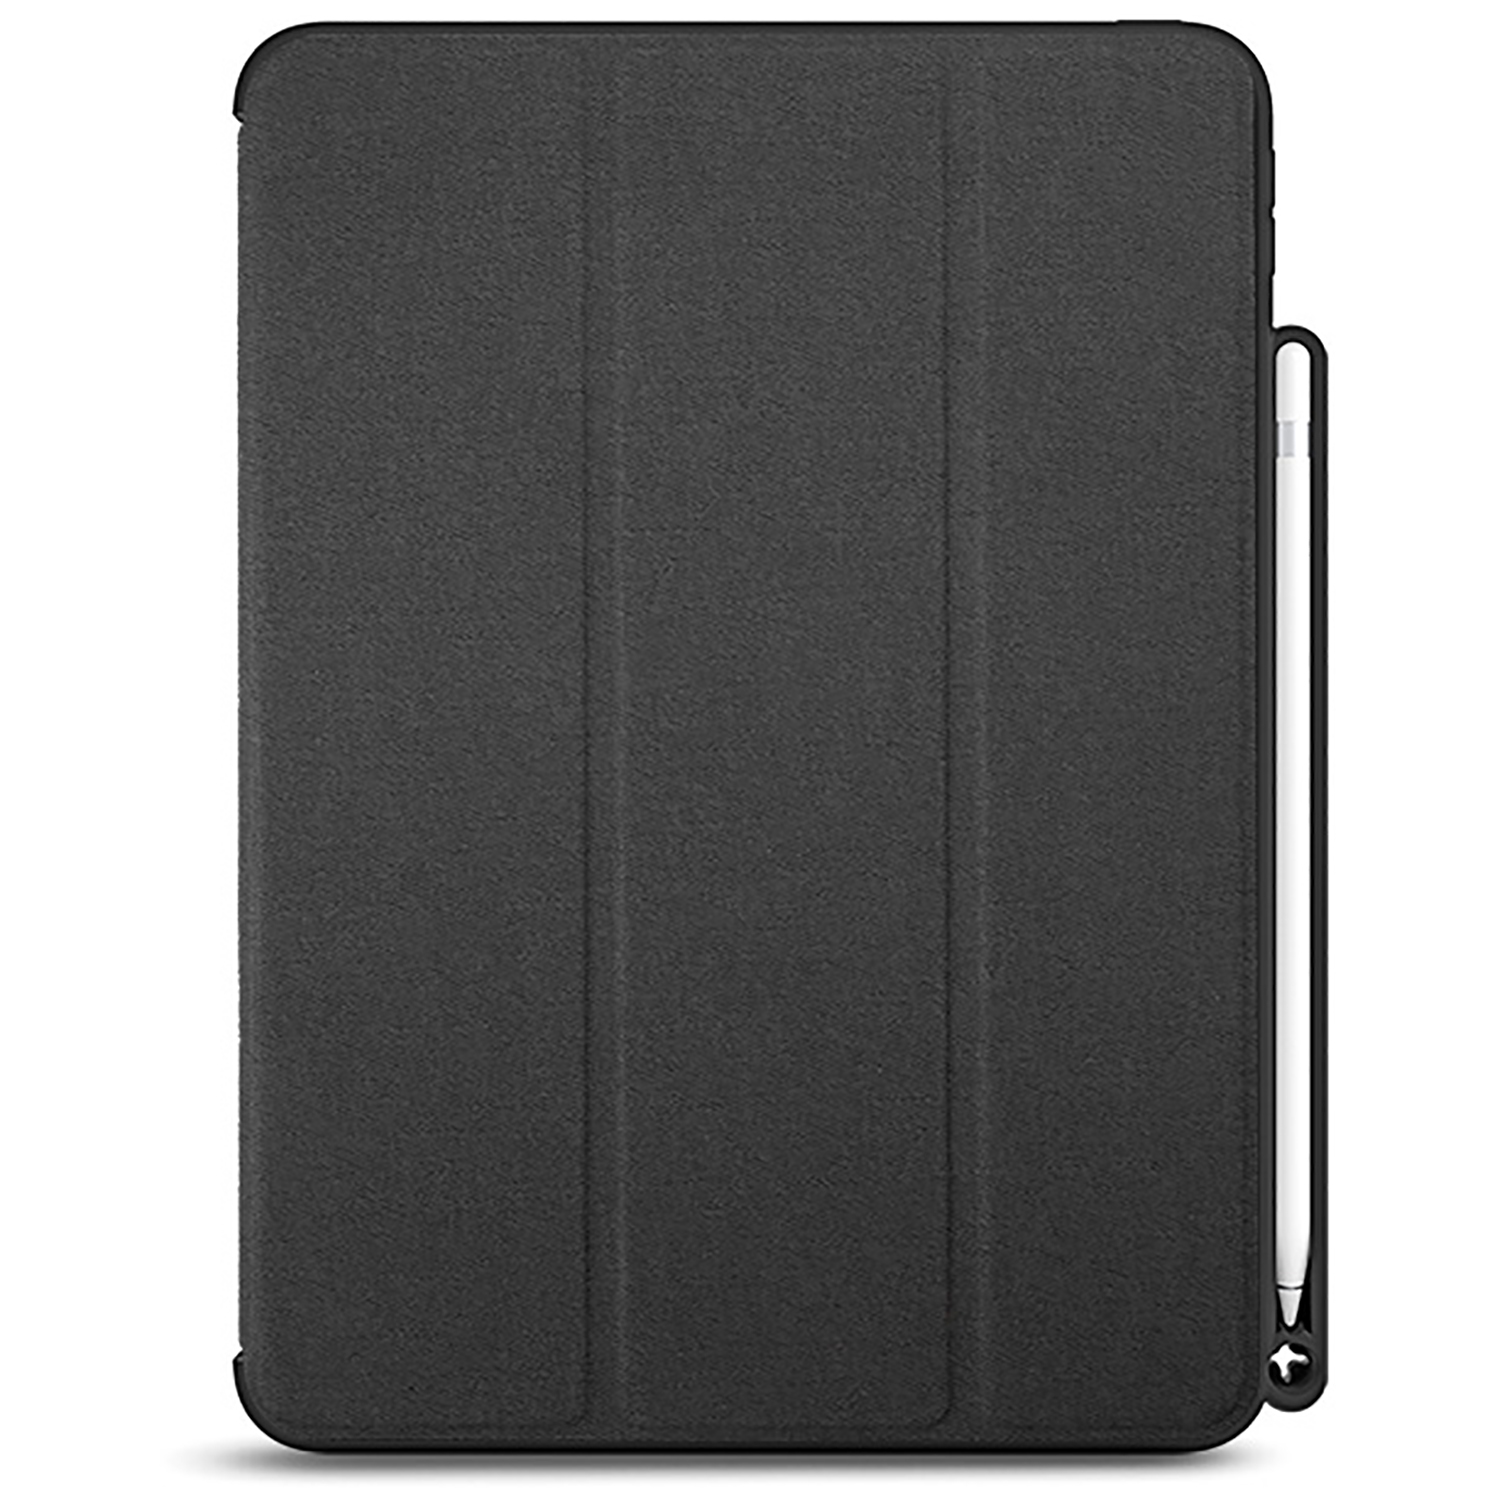 competitive price 4cb91 4cab4 Details about LUVVITT iPad Pro 11 Case Front and Back Cover with Pencil  Holder 2018